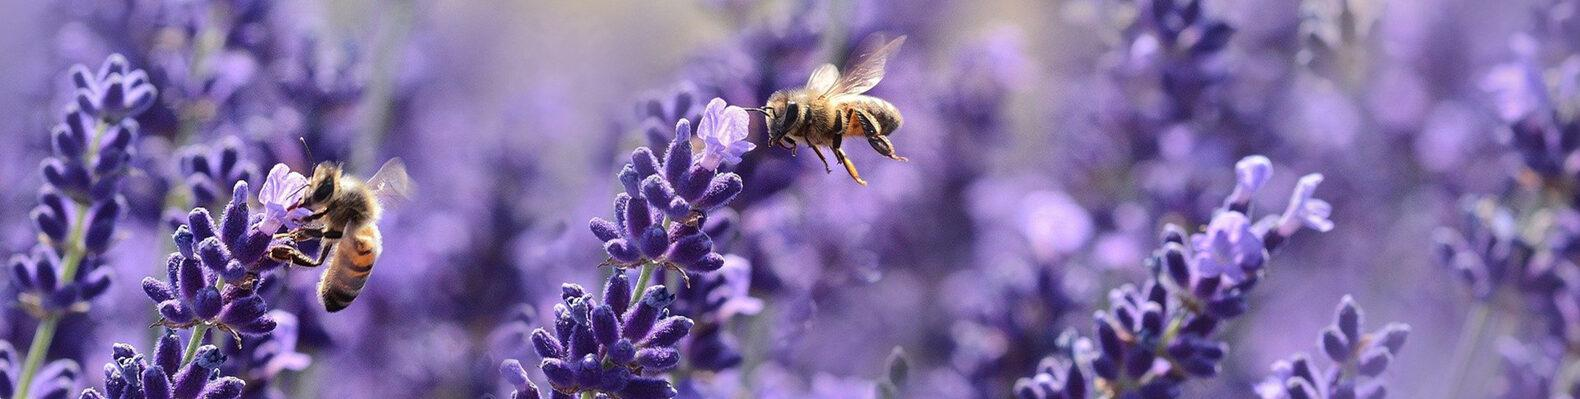 two bees on lavender plants